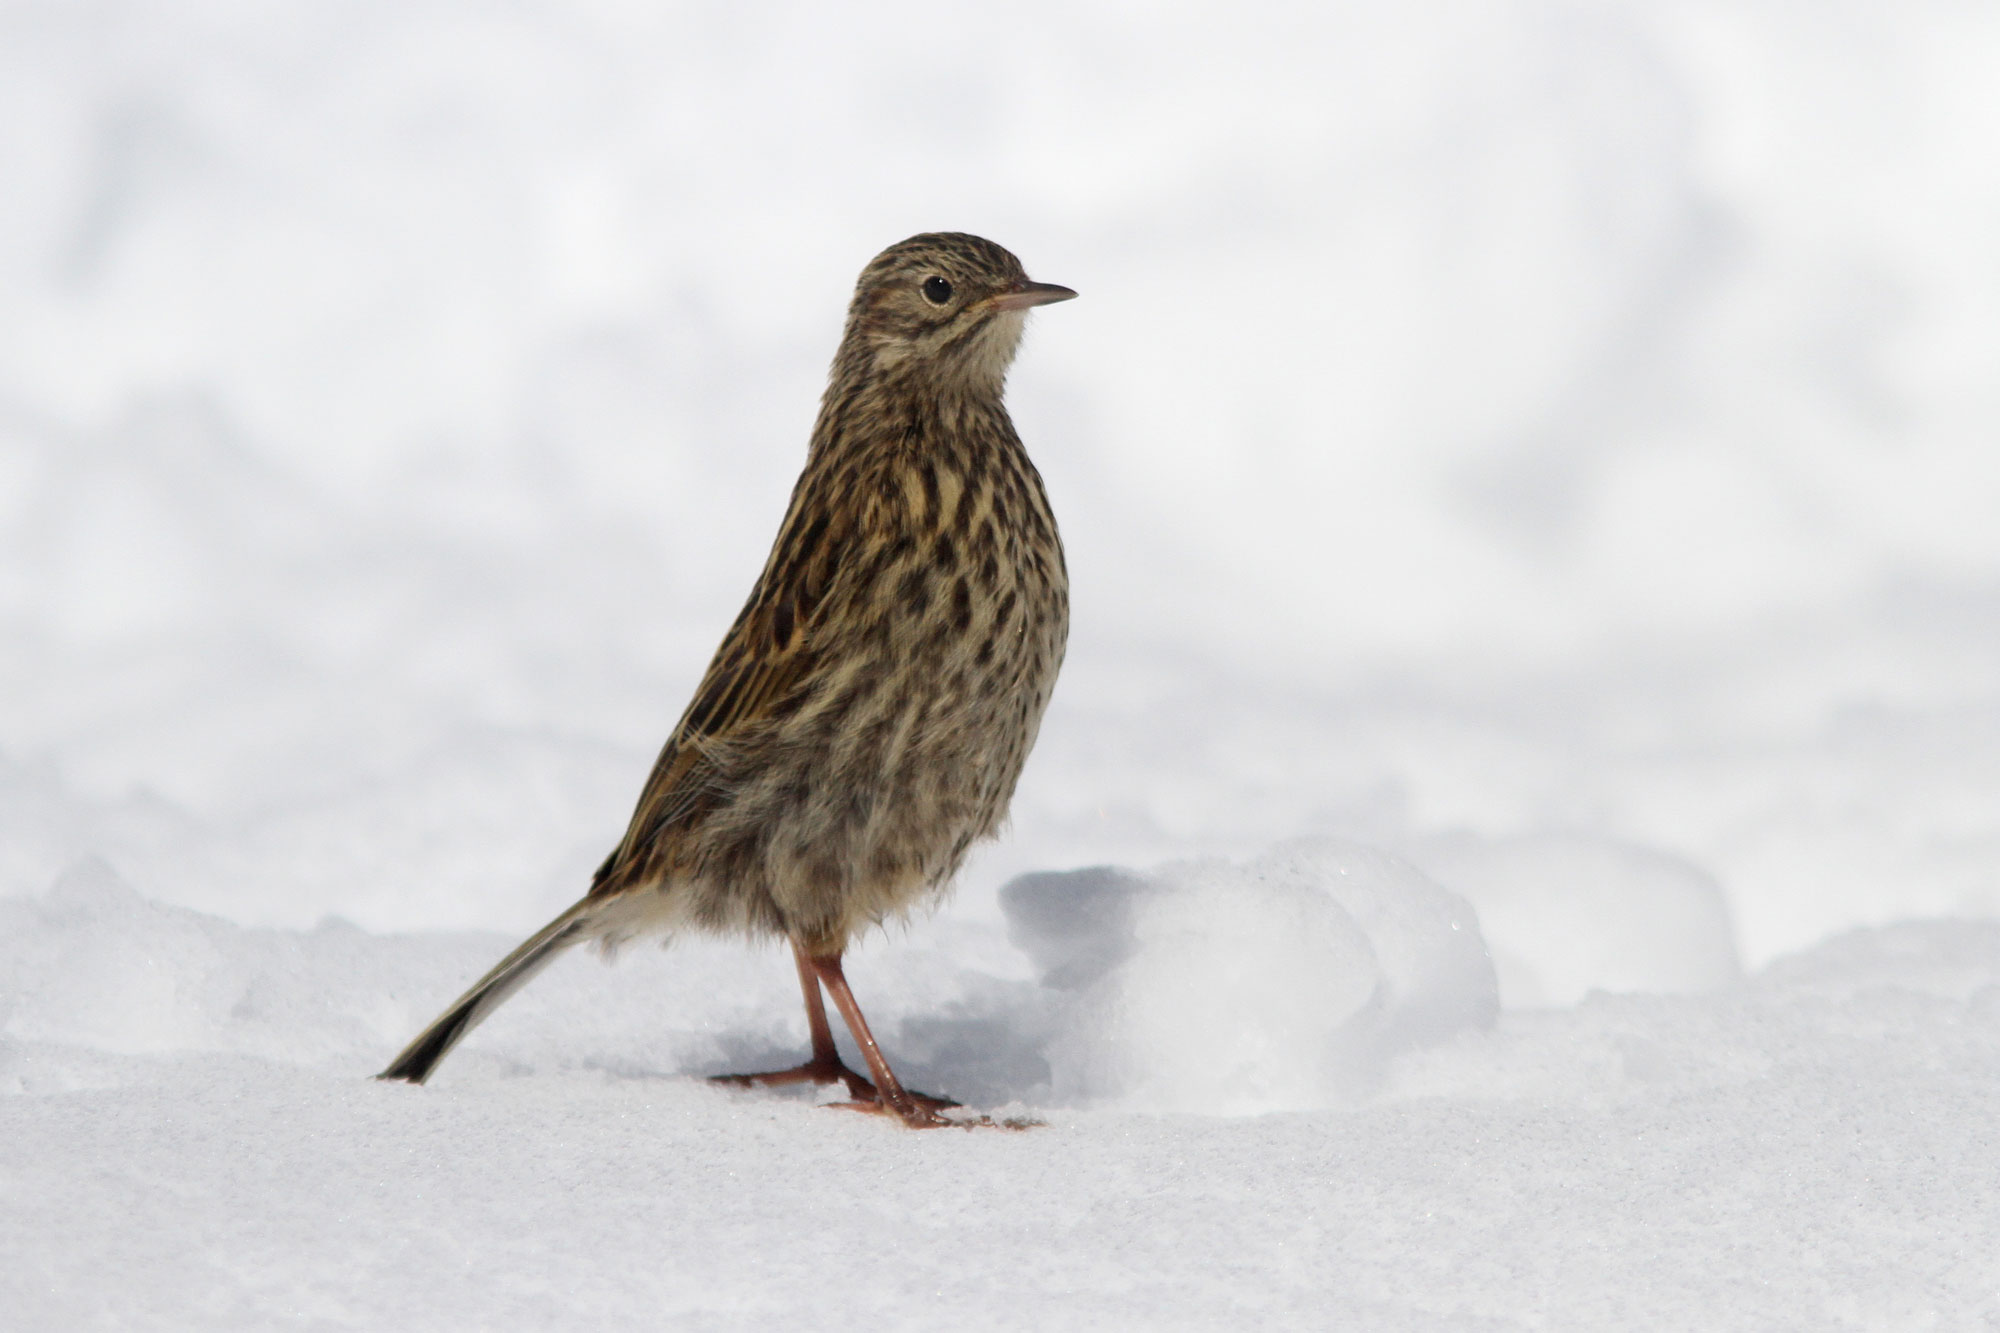 The South Georgia Pipit is just one prized endemic species ornithologist, adventurer and author Noah Strycker hopes to spot while on expedition with you from South Georgia to Cape Verde! Photo: Noah Strycker